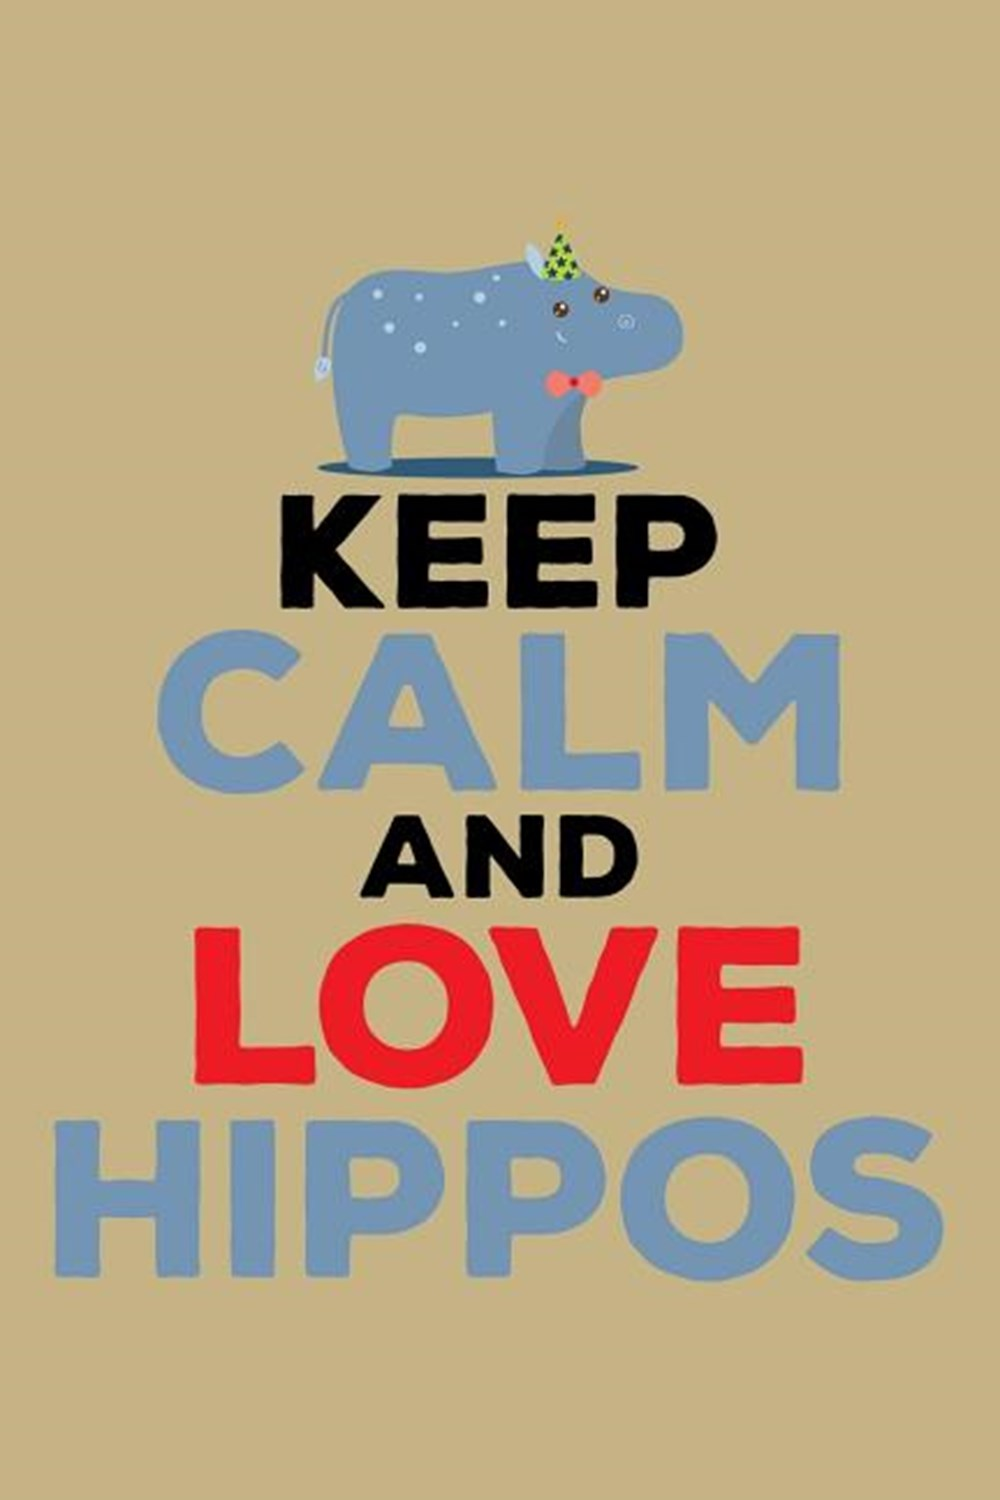 Keep Calm And Love Hippos Blank Paper Sketch Book - Artist Sketch Pad Journal for Sketching, Doodlin